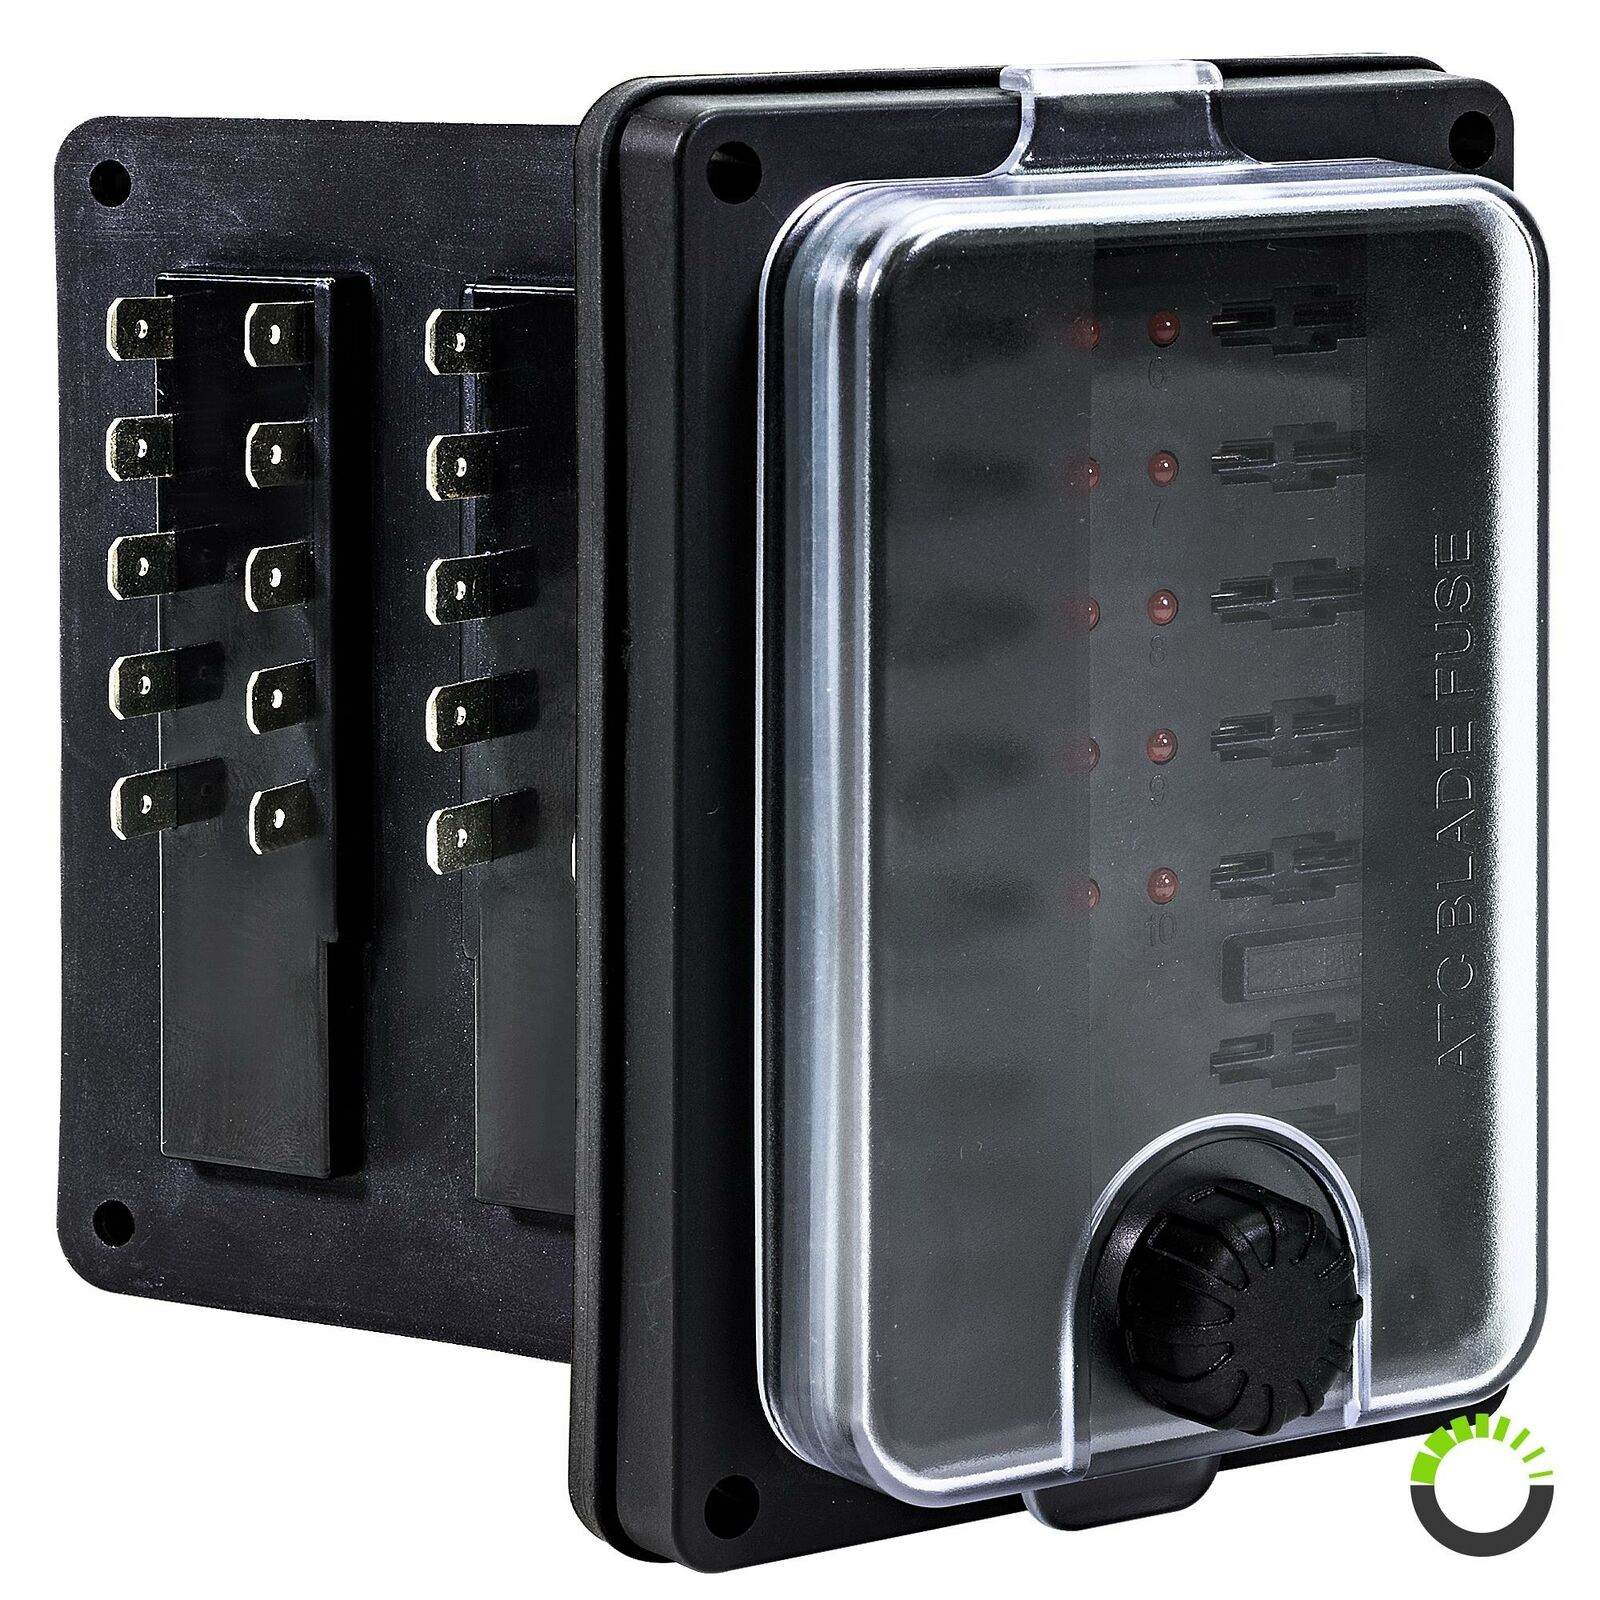 Boat Fuse Box Wiring Schematic 2019 2004 Isuzu Axiom Location 10 Way Waterproof Blade Holder Block Atc Ato For Car Rh Picclick Com Ranger Replacement